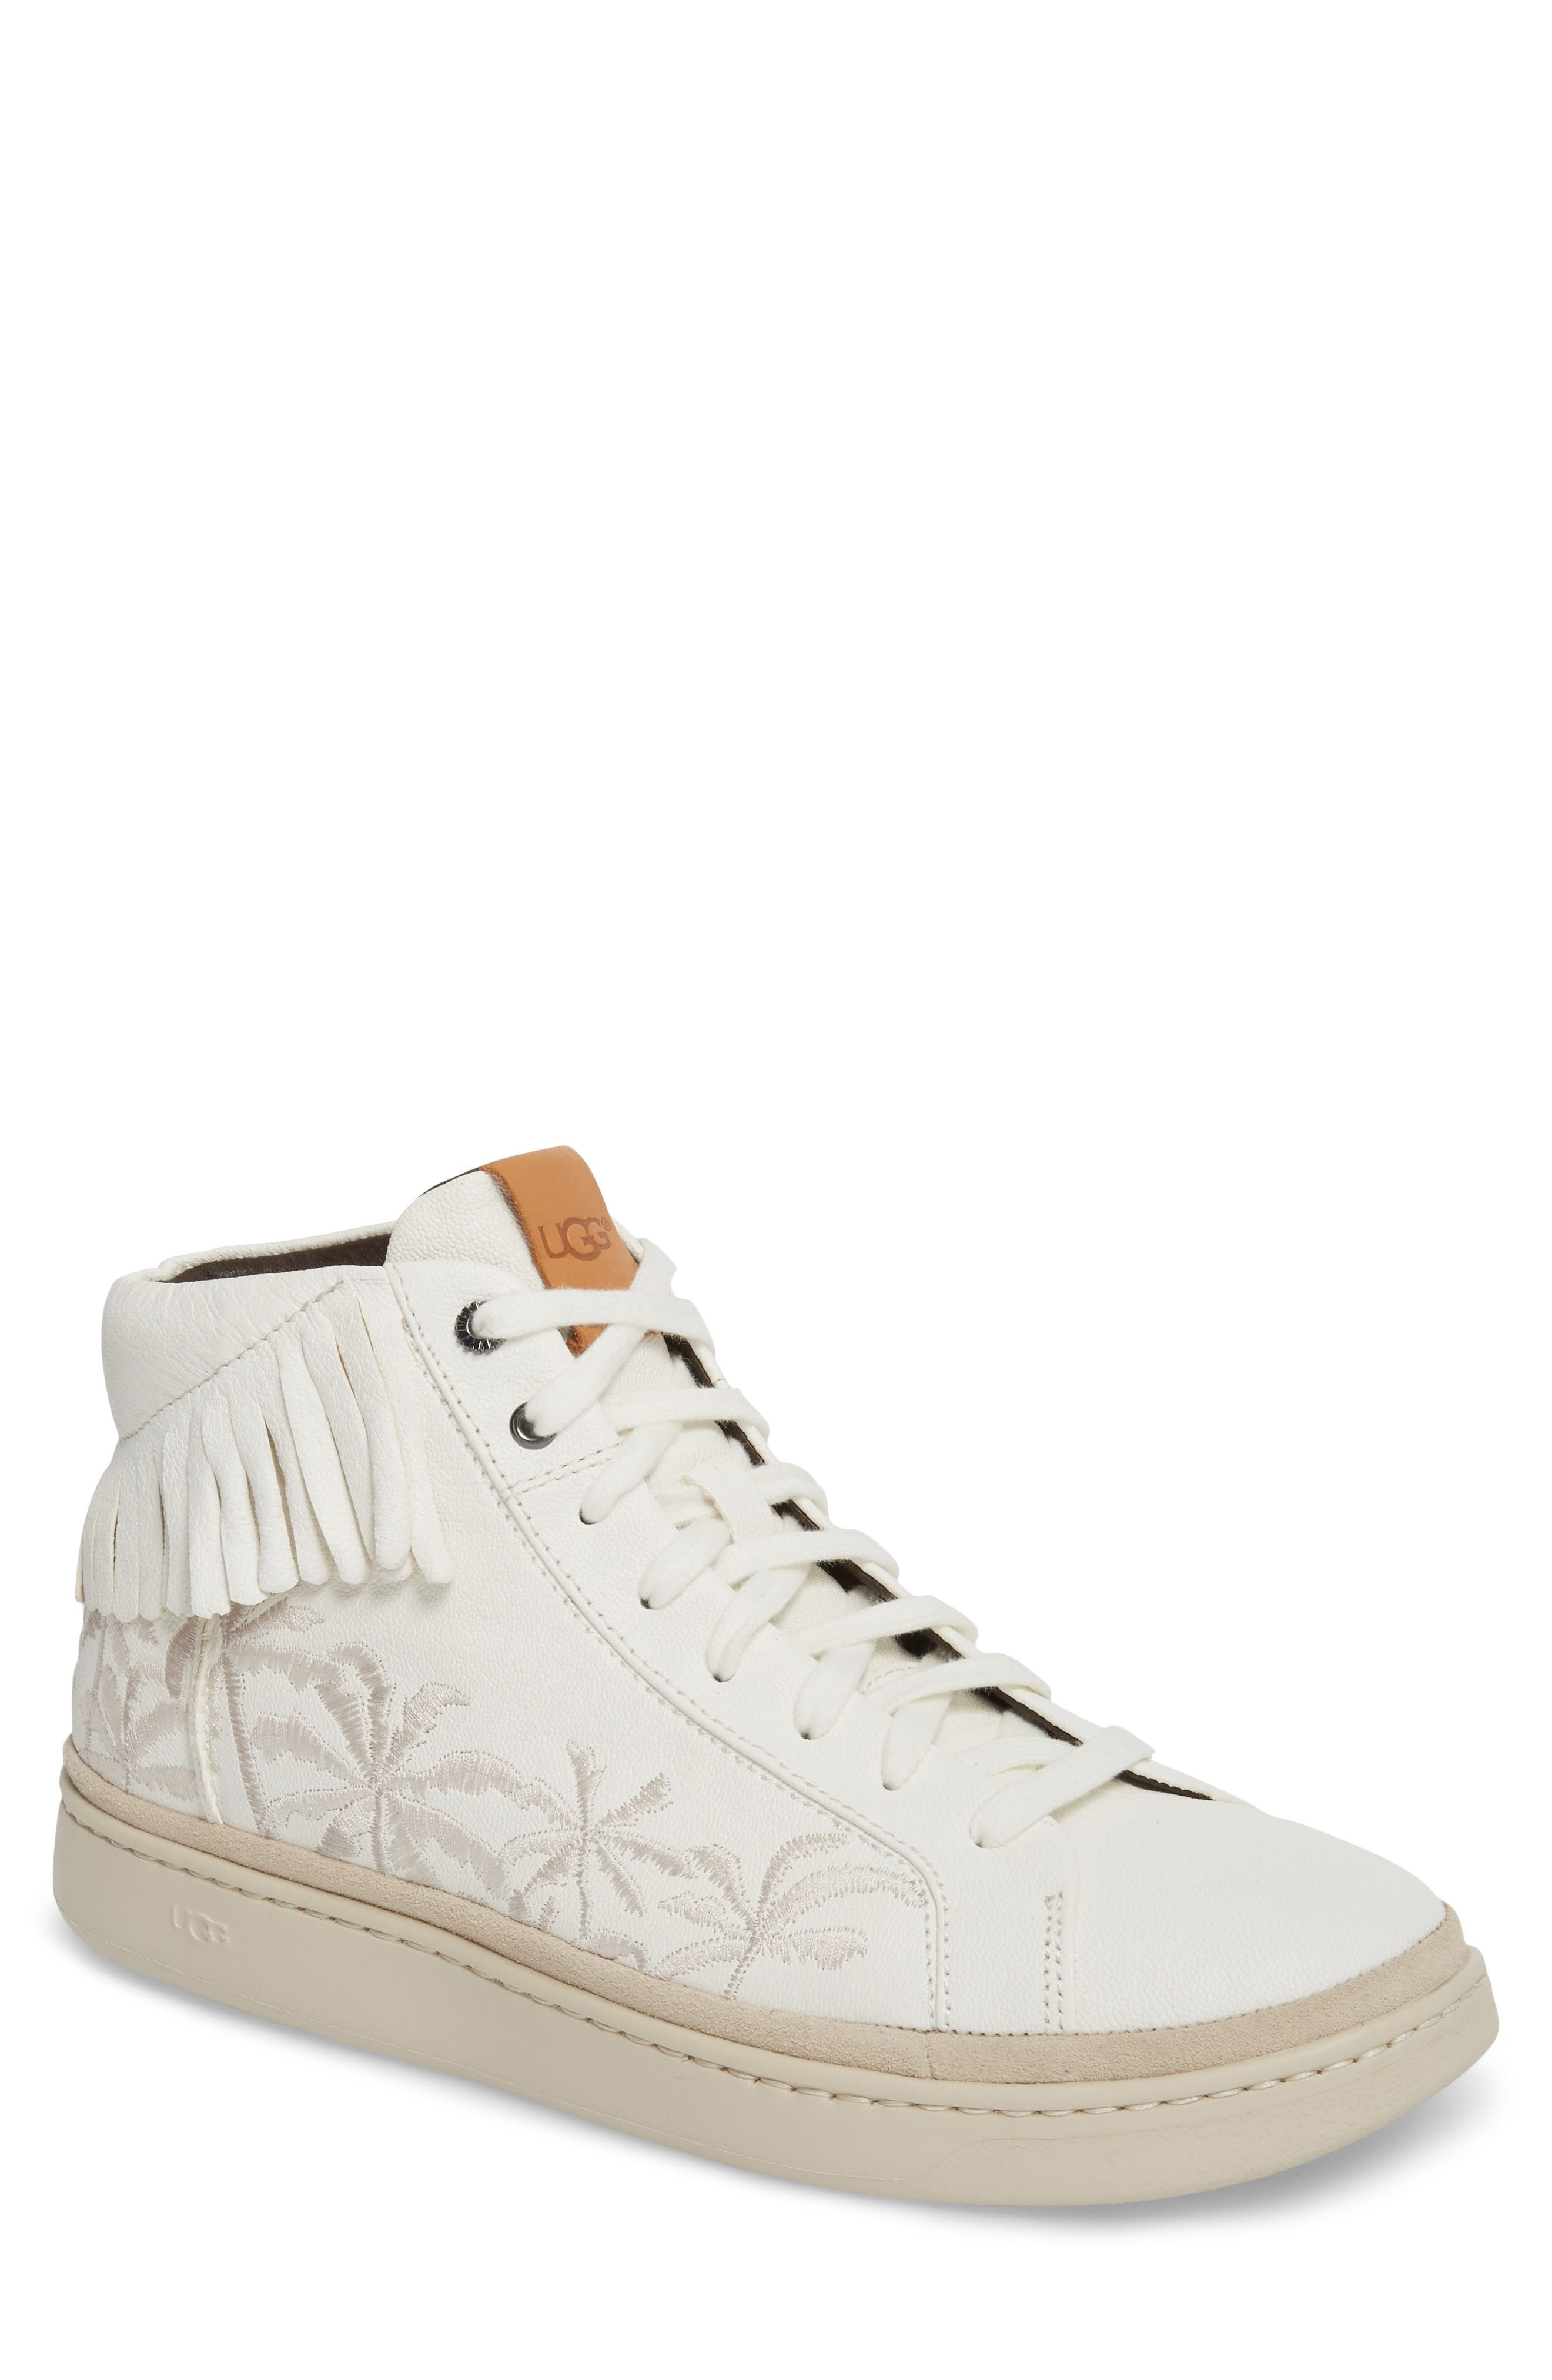 Cali Fringe High Top Sneaker,                         Main,                         color, White Leather